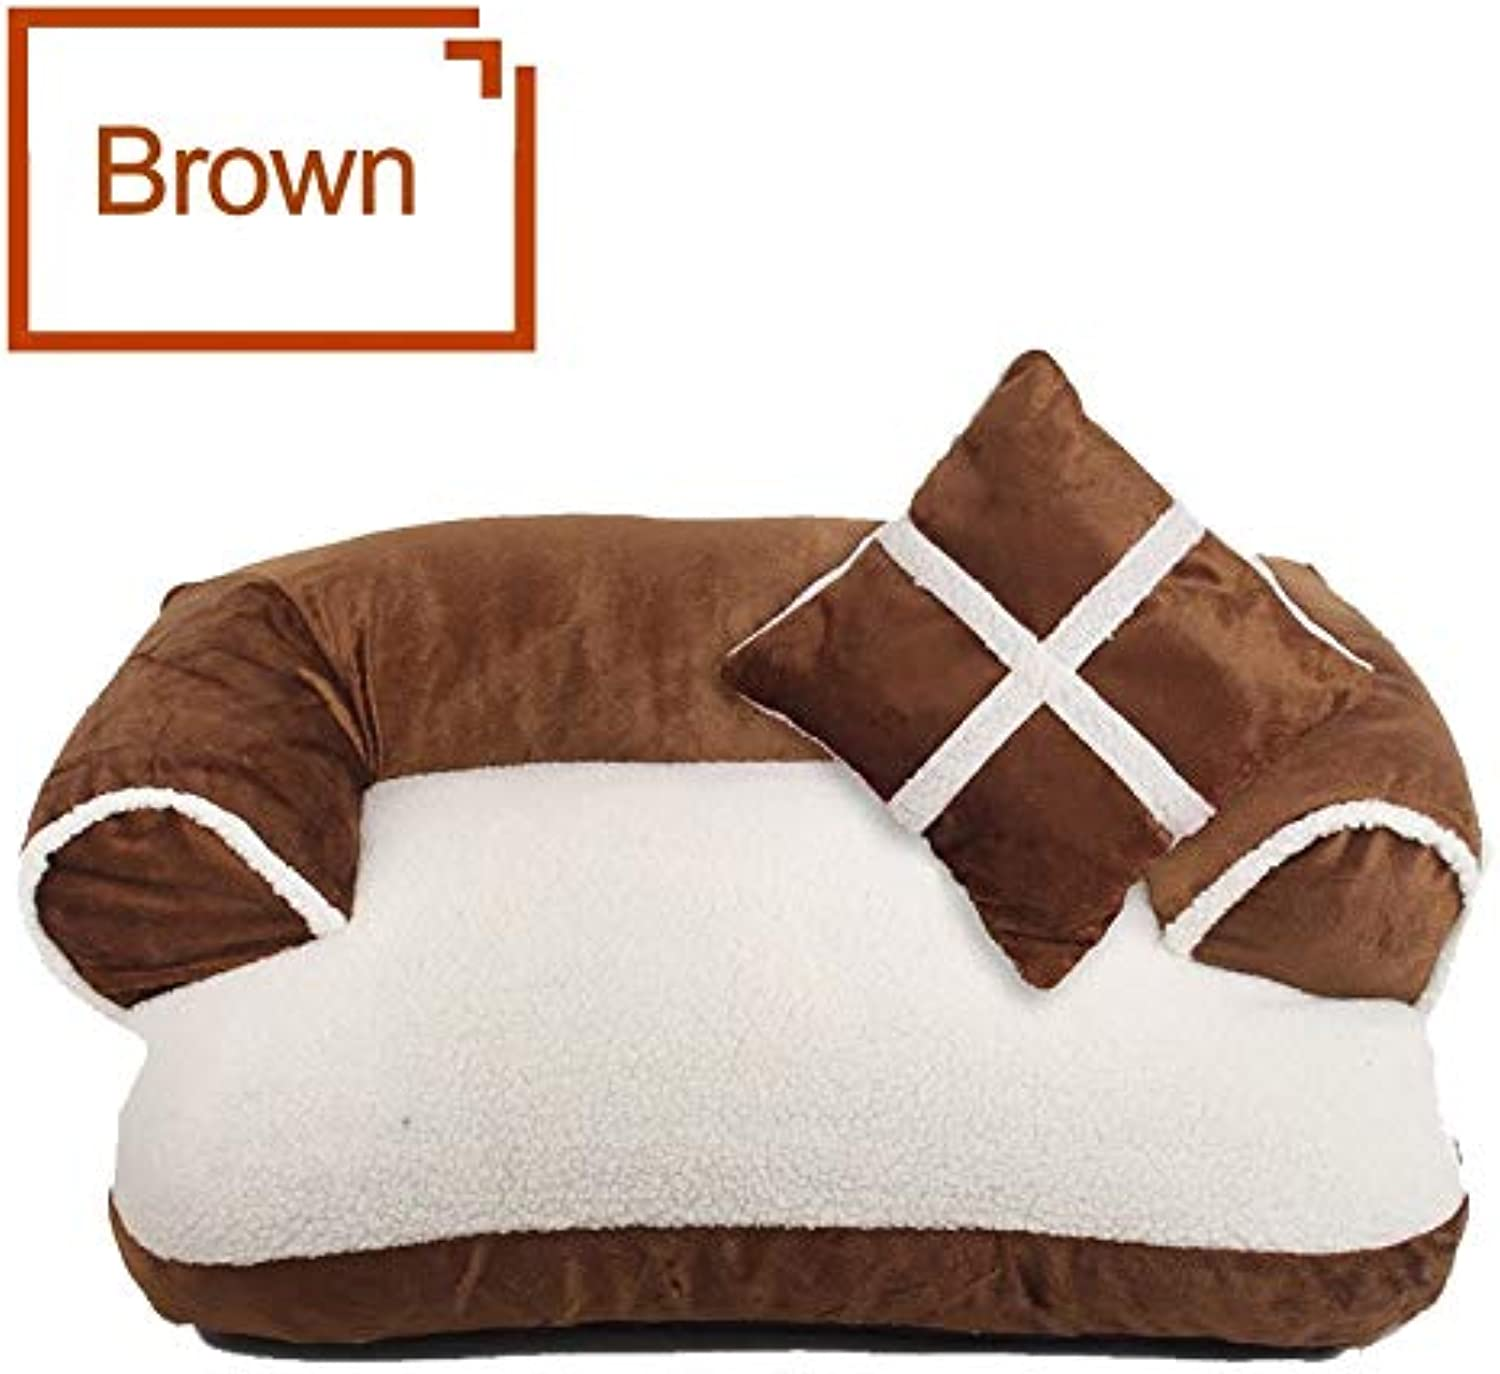 Aigou Dog Bed Soft DoubleCushion Dog Bed Lounger Sofa Warming Puppy House For Dogs Cat Nest Sleeping Mats Pet Bedding Kennels Pet Supplies